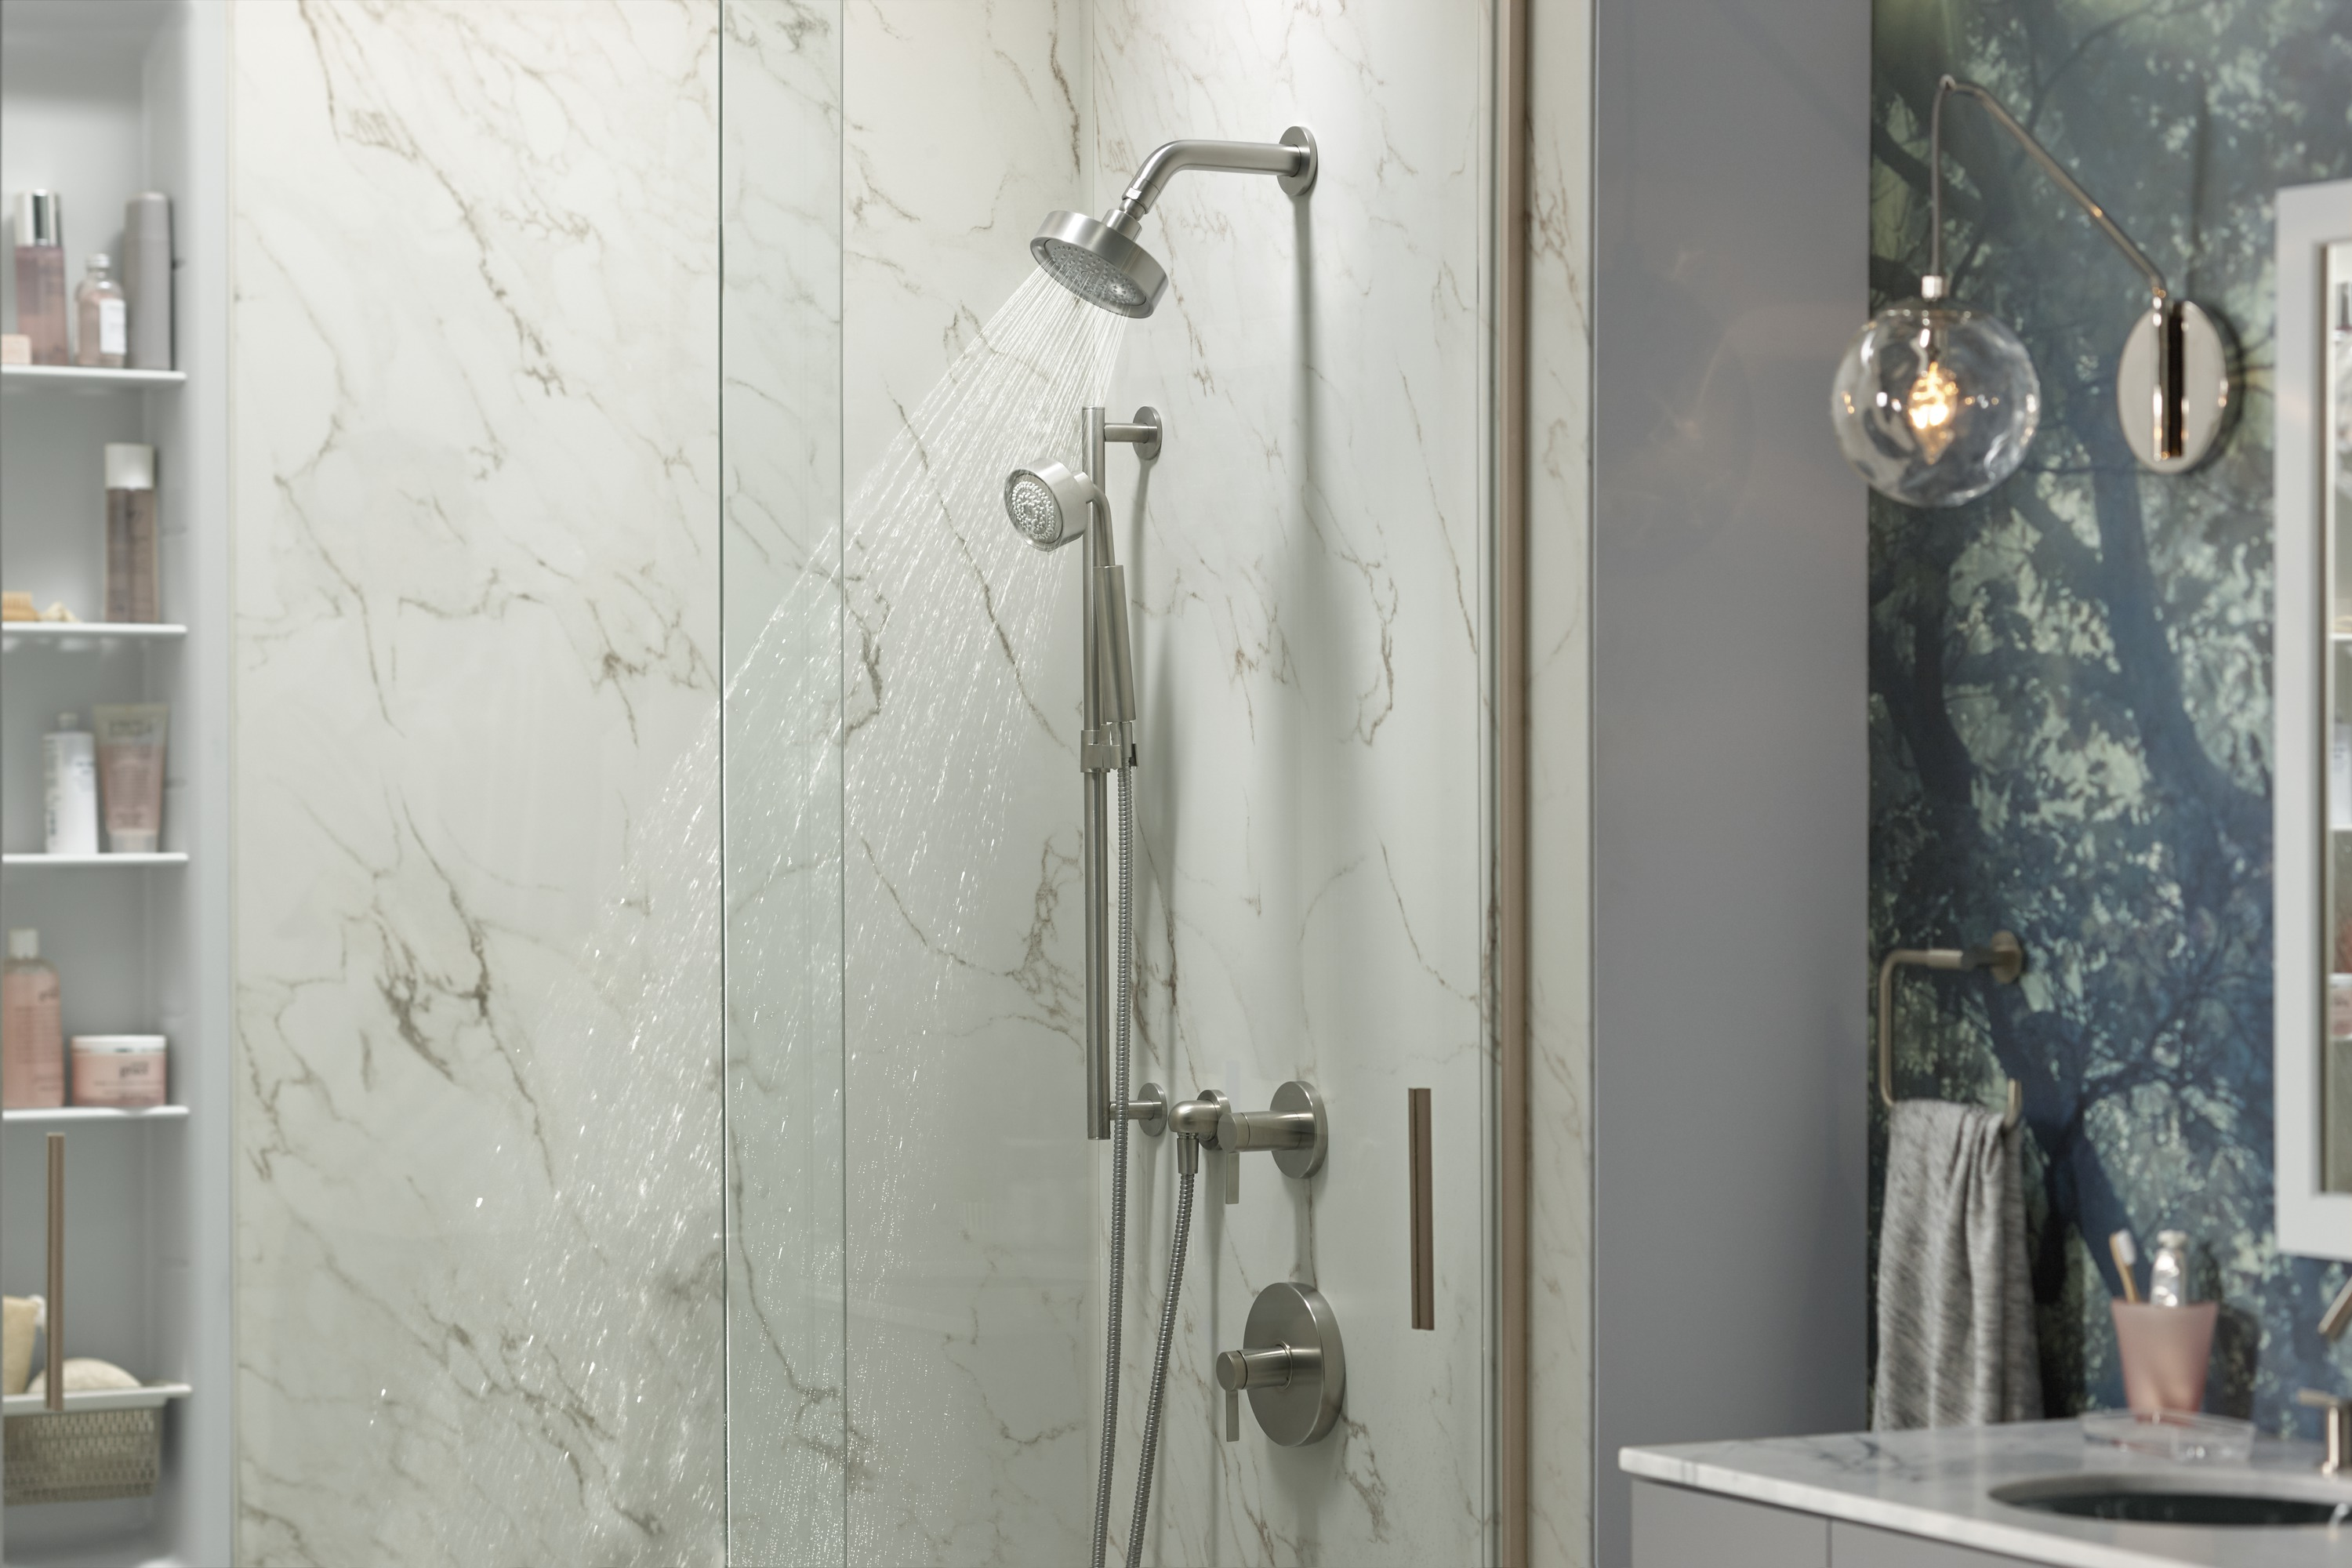 Slidebar     Purist® handshower     MasterShower® hose     Purist showerhead     The perfect feature for a shower used by multiple individuals, a slidebar allows everyone to adjust the handshower to a comfortable height.